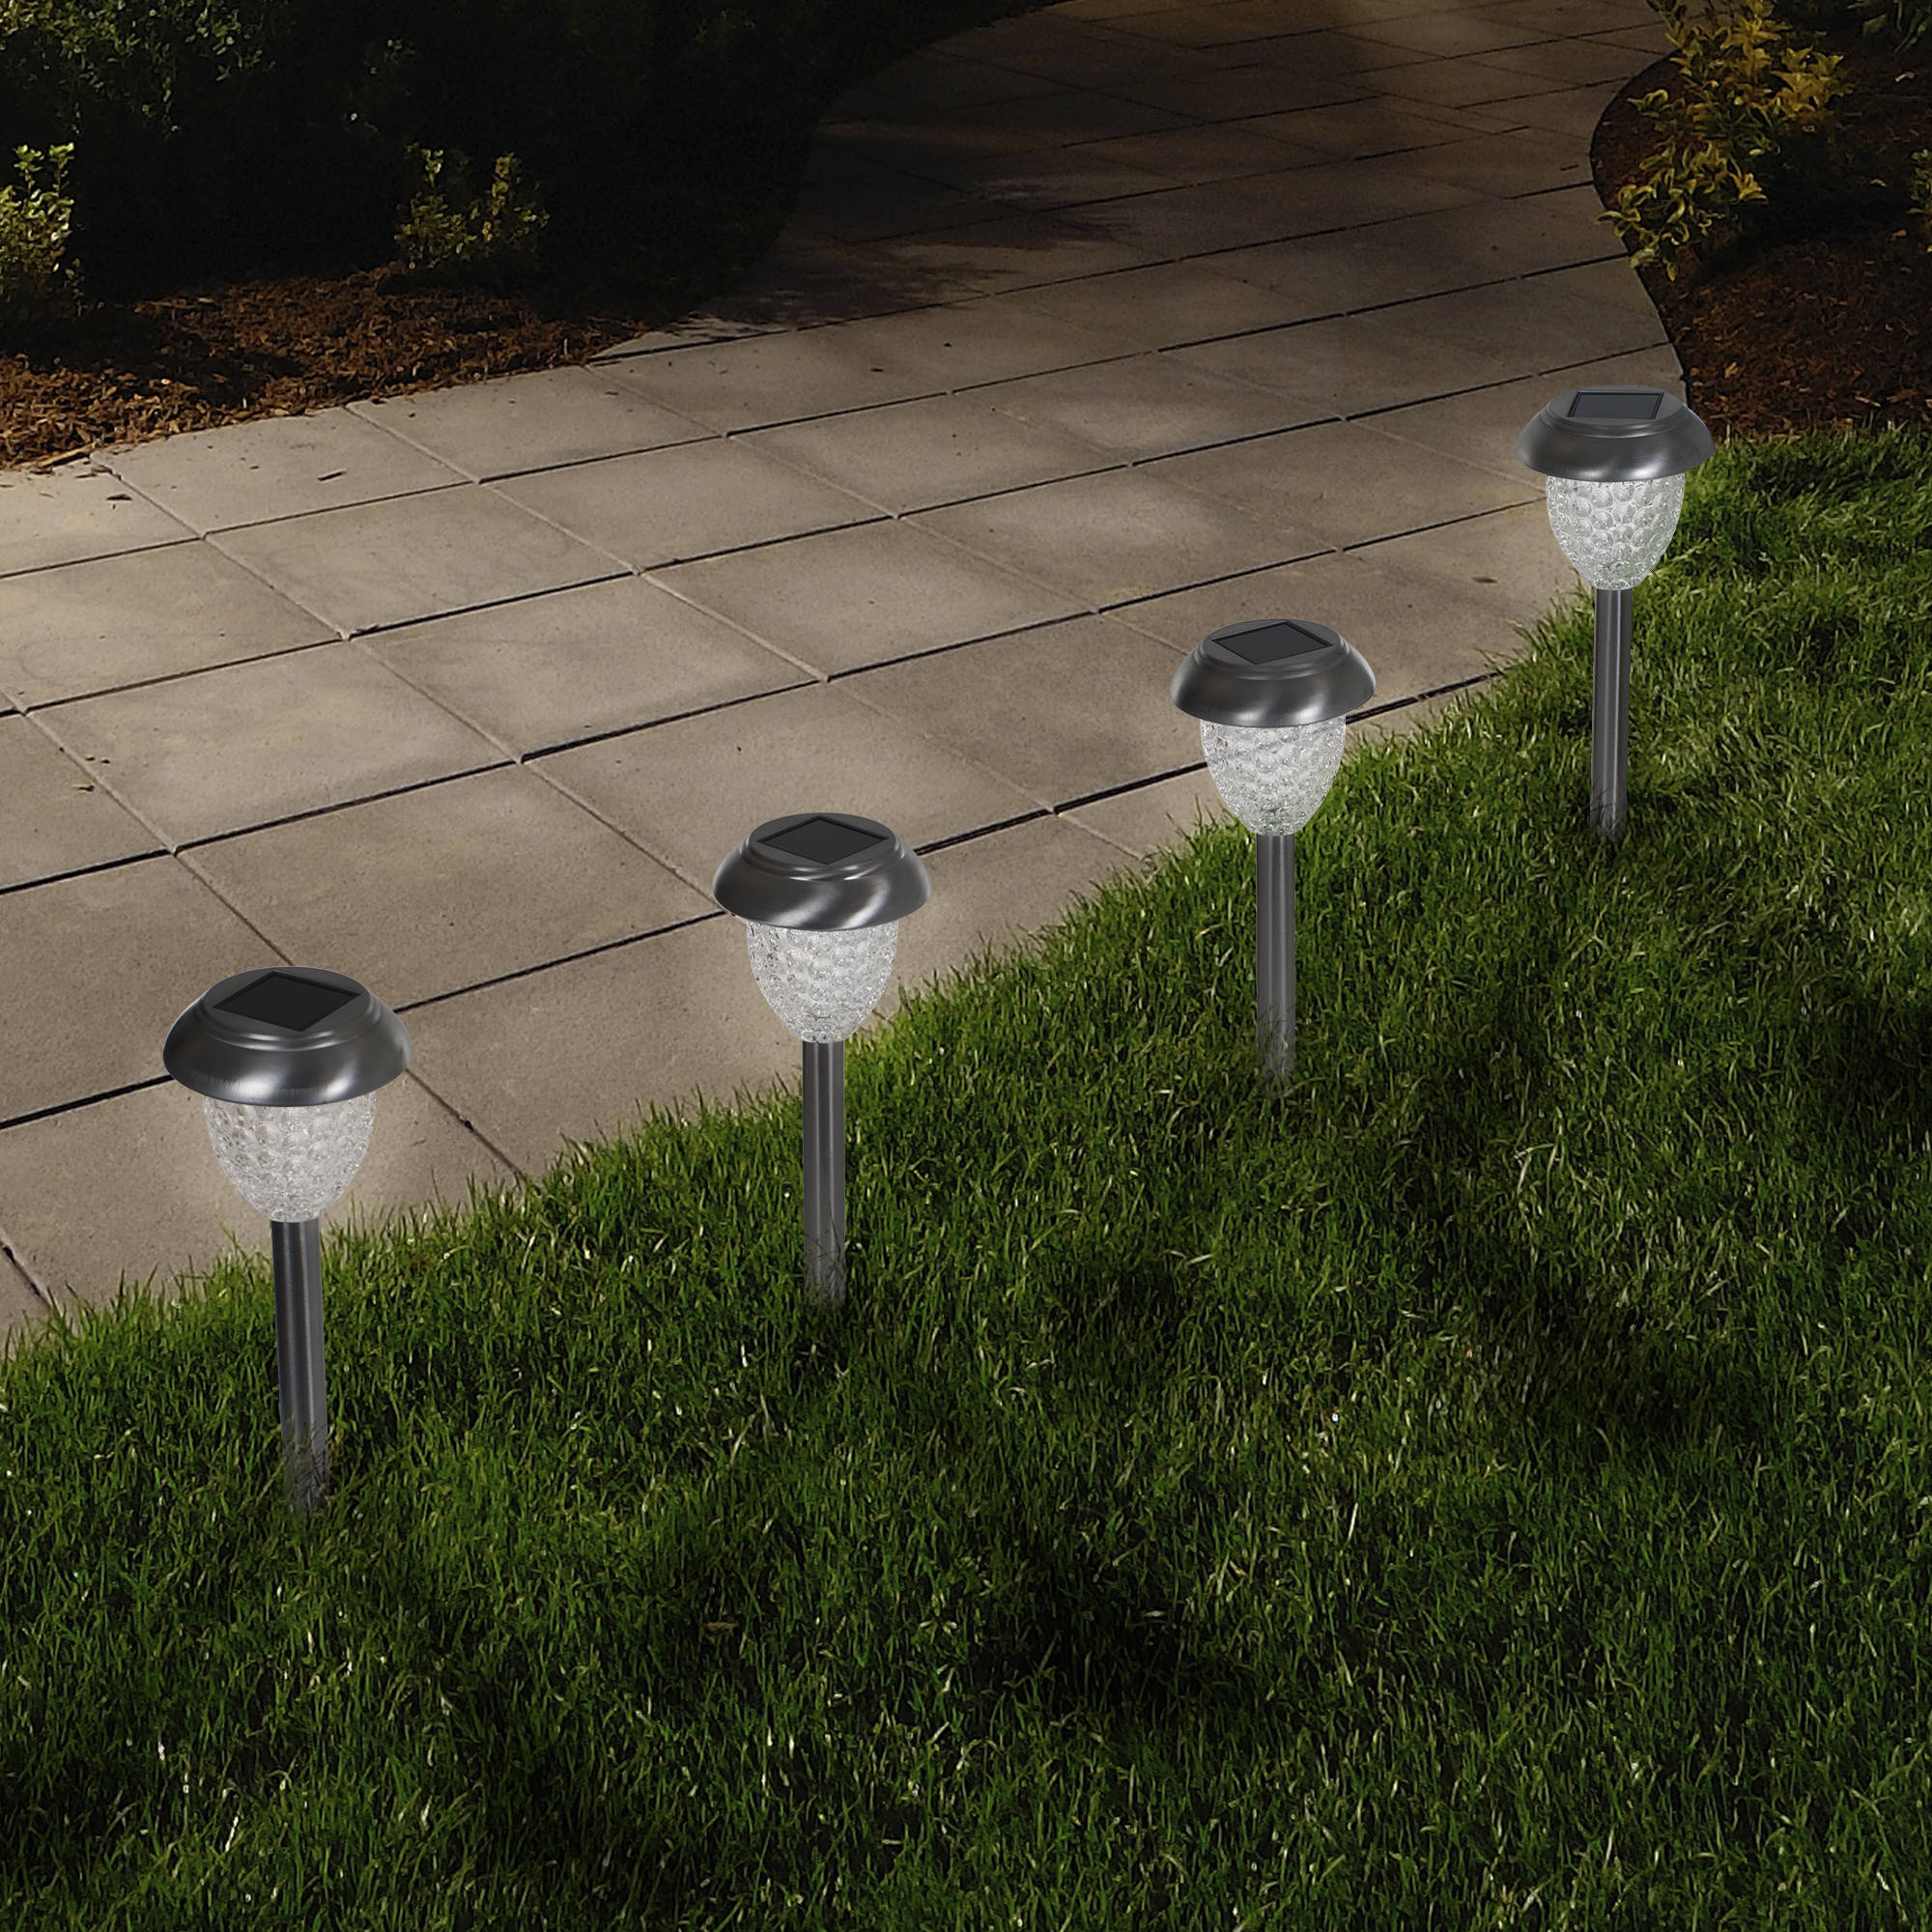 Solar Powered Glass Lights Set of 6 LED Outdoor Stake Spotlight Fixture for Gardens, Pathways